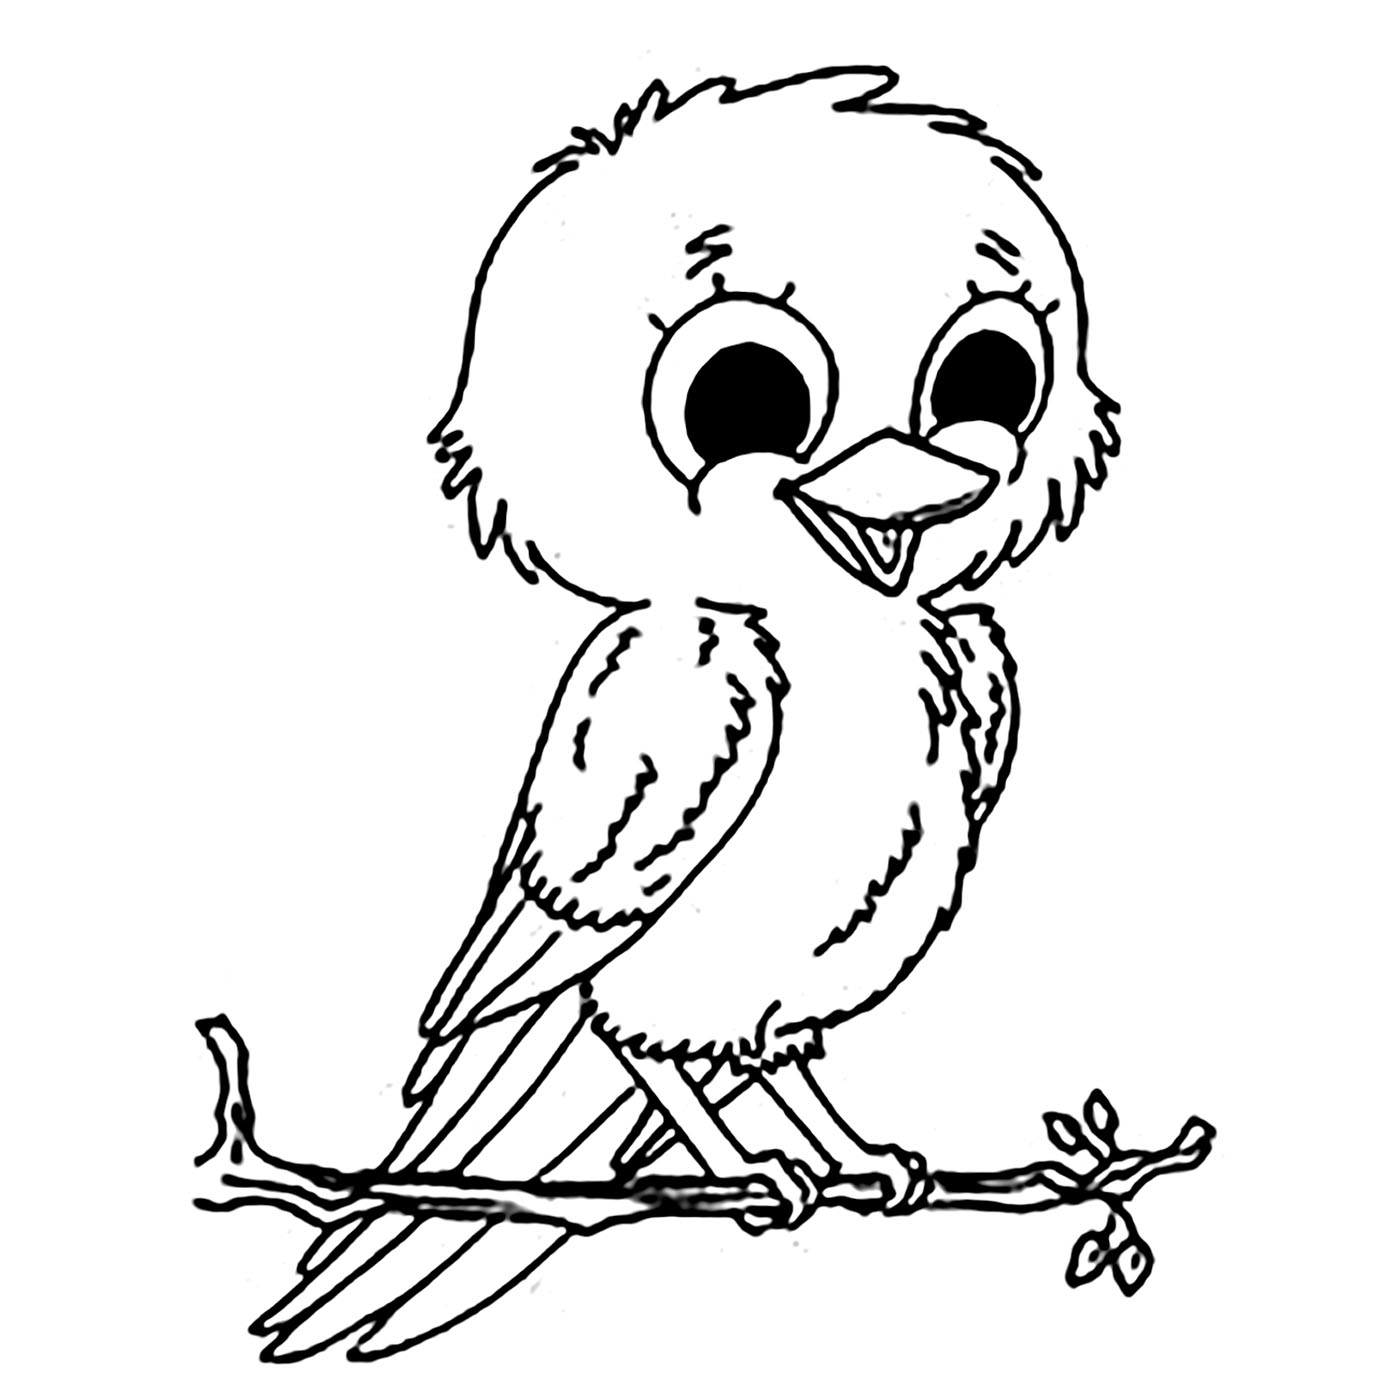 coloring bird for kids cute bird coloring page for kids tsgoscom kids coloring for bird